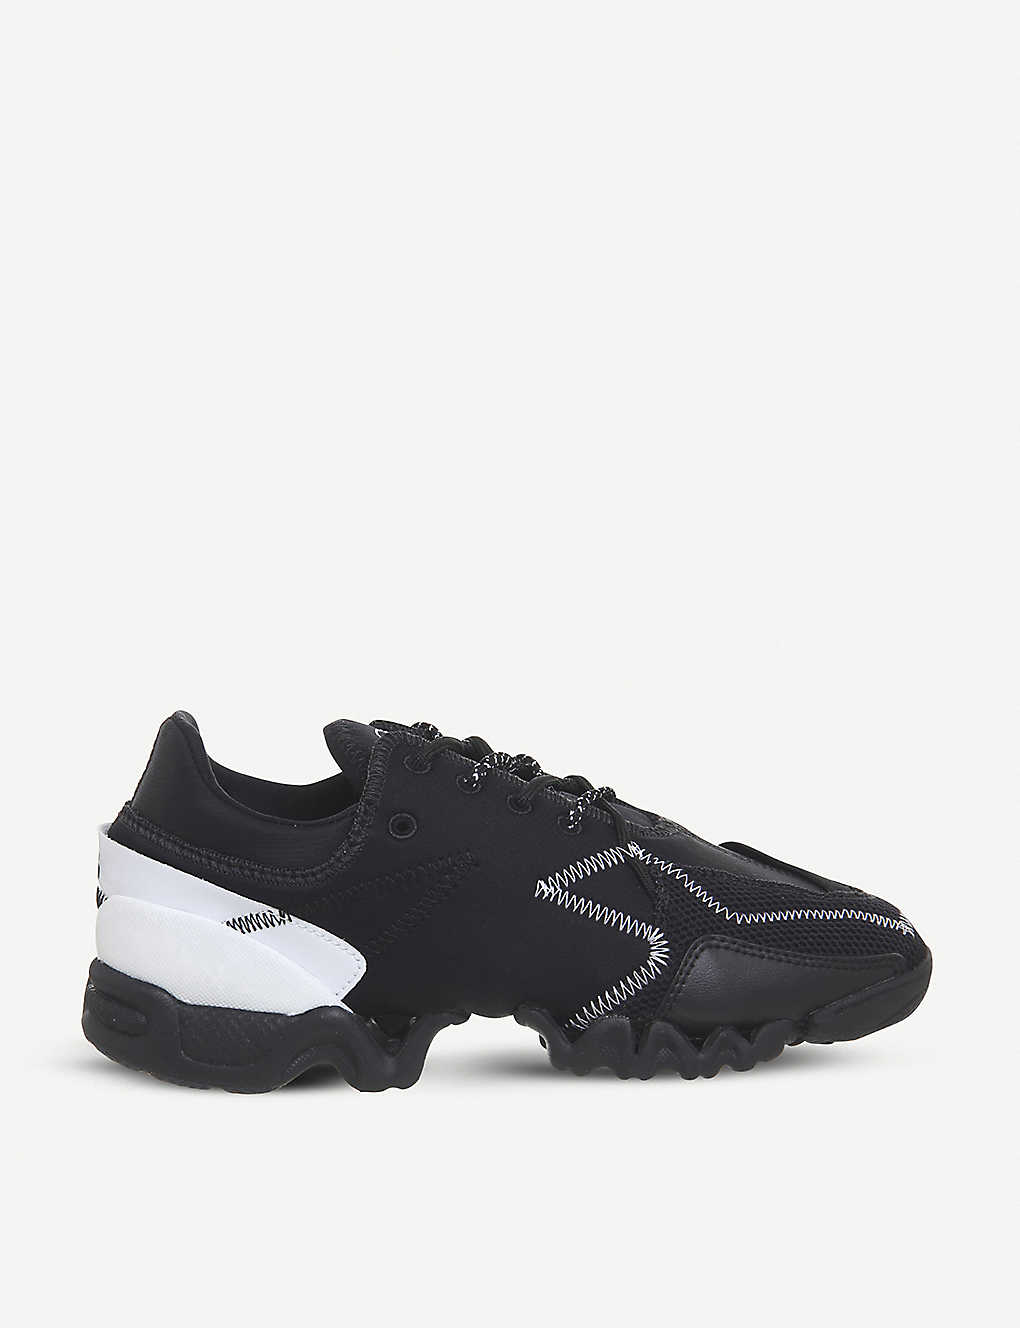 067cf145c25a6 ADIDAS Y3 - Ekika leather and neoprene trainers